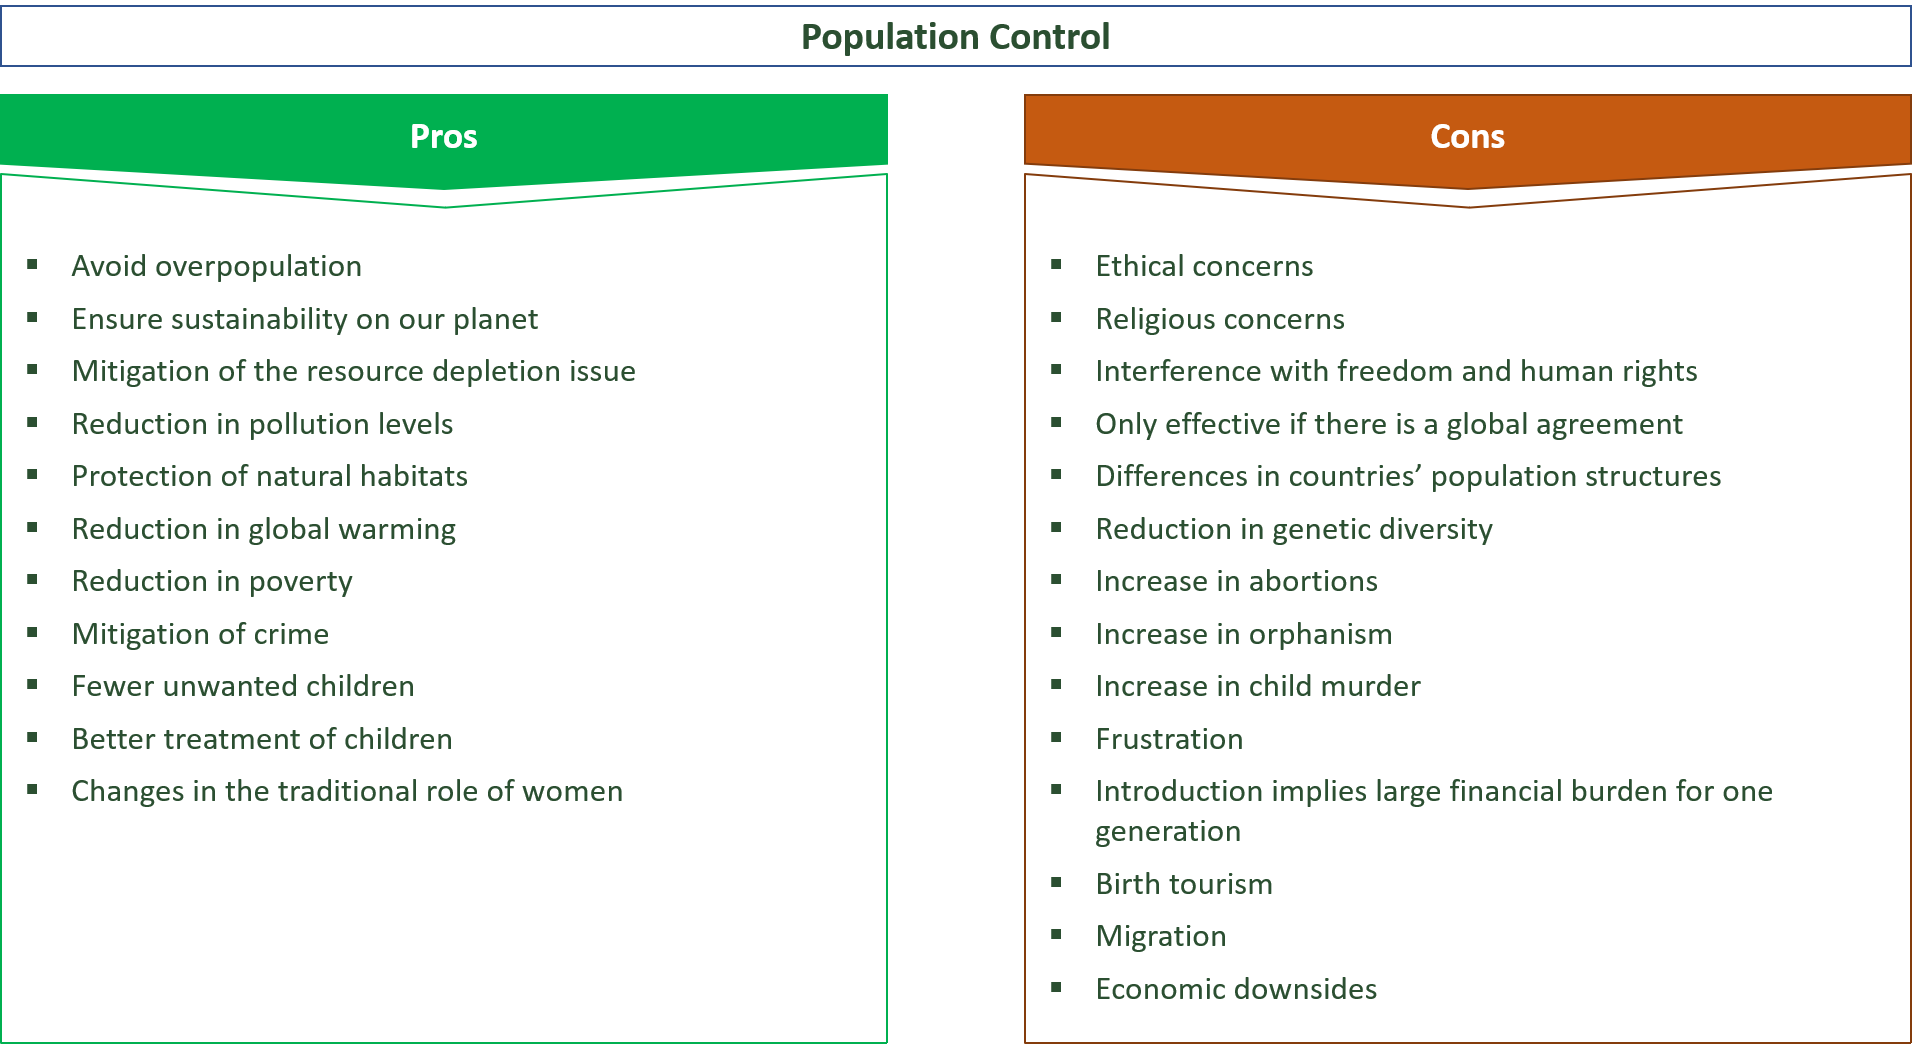 the pros and cons of population control